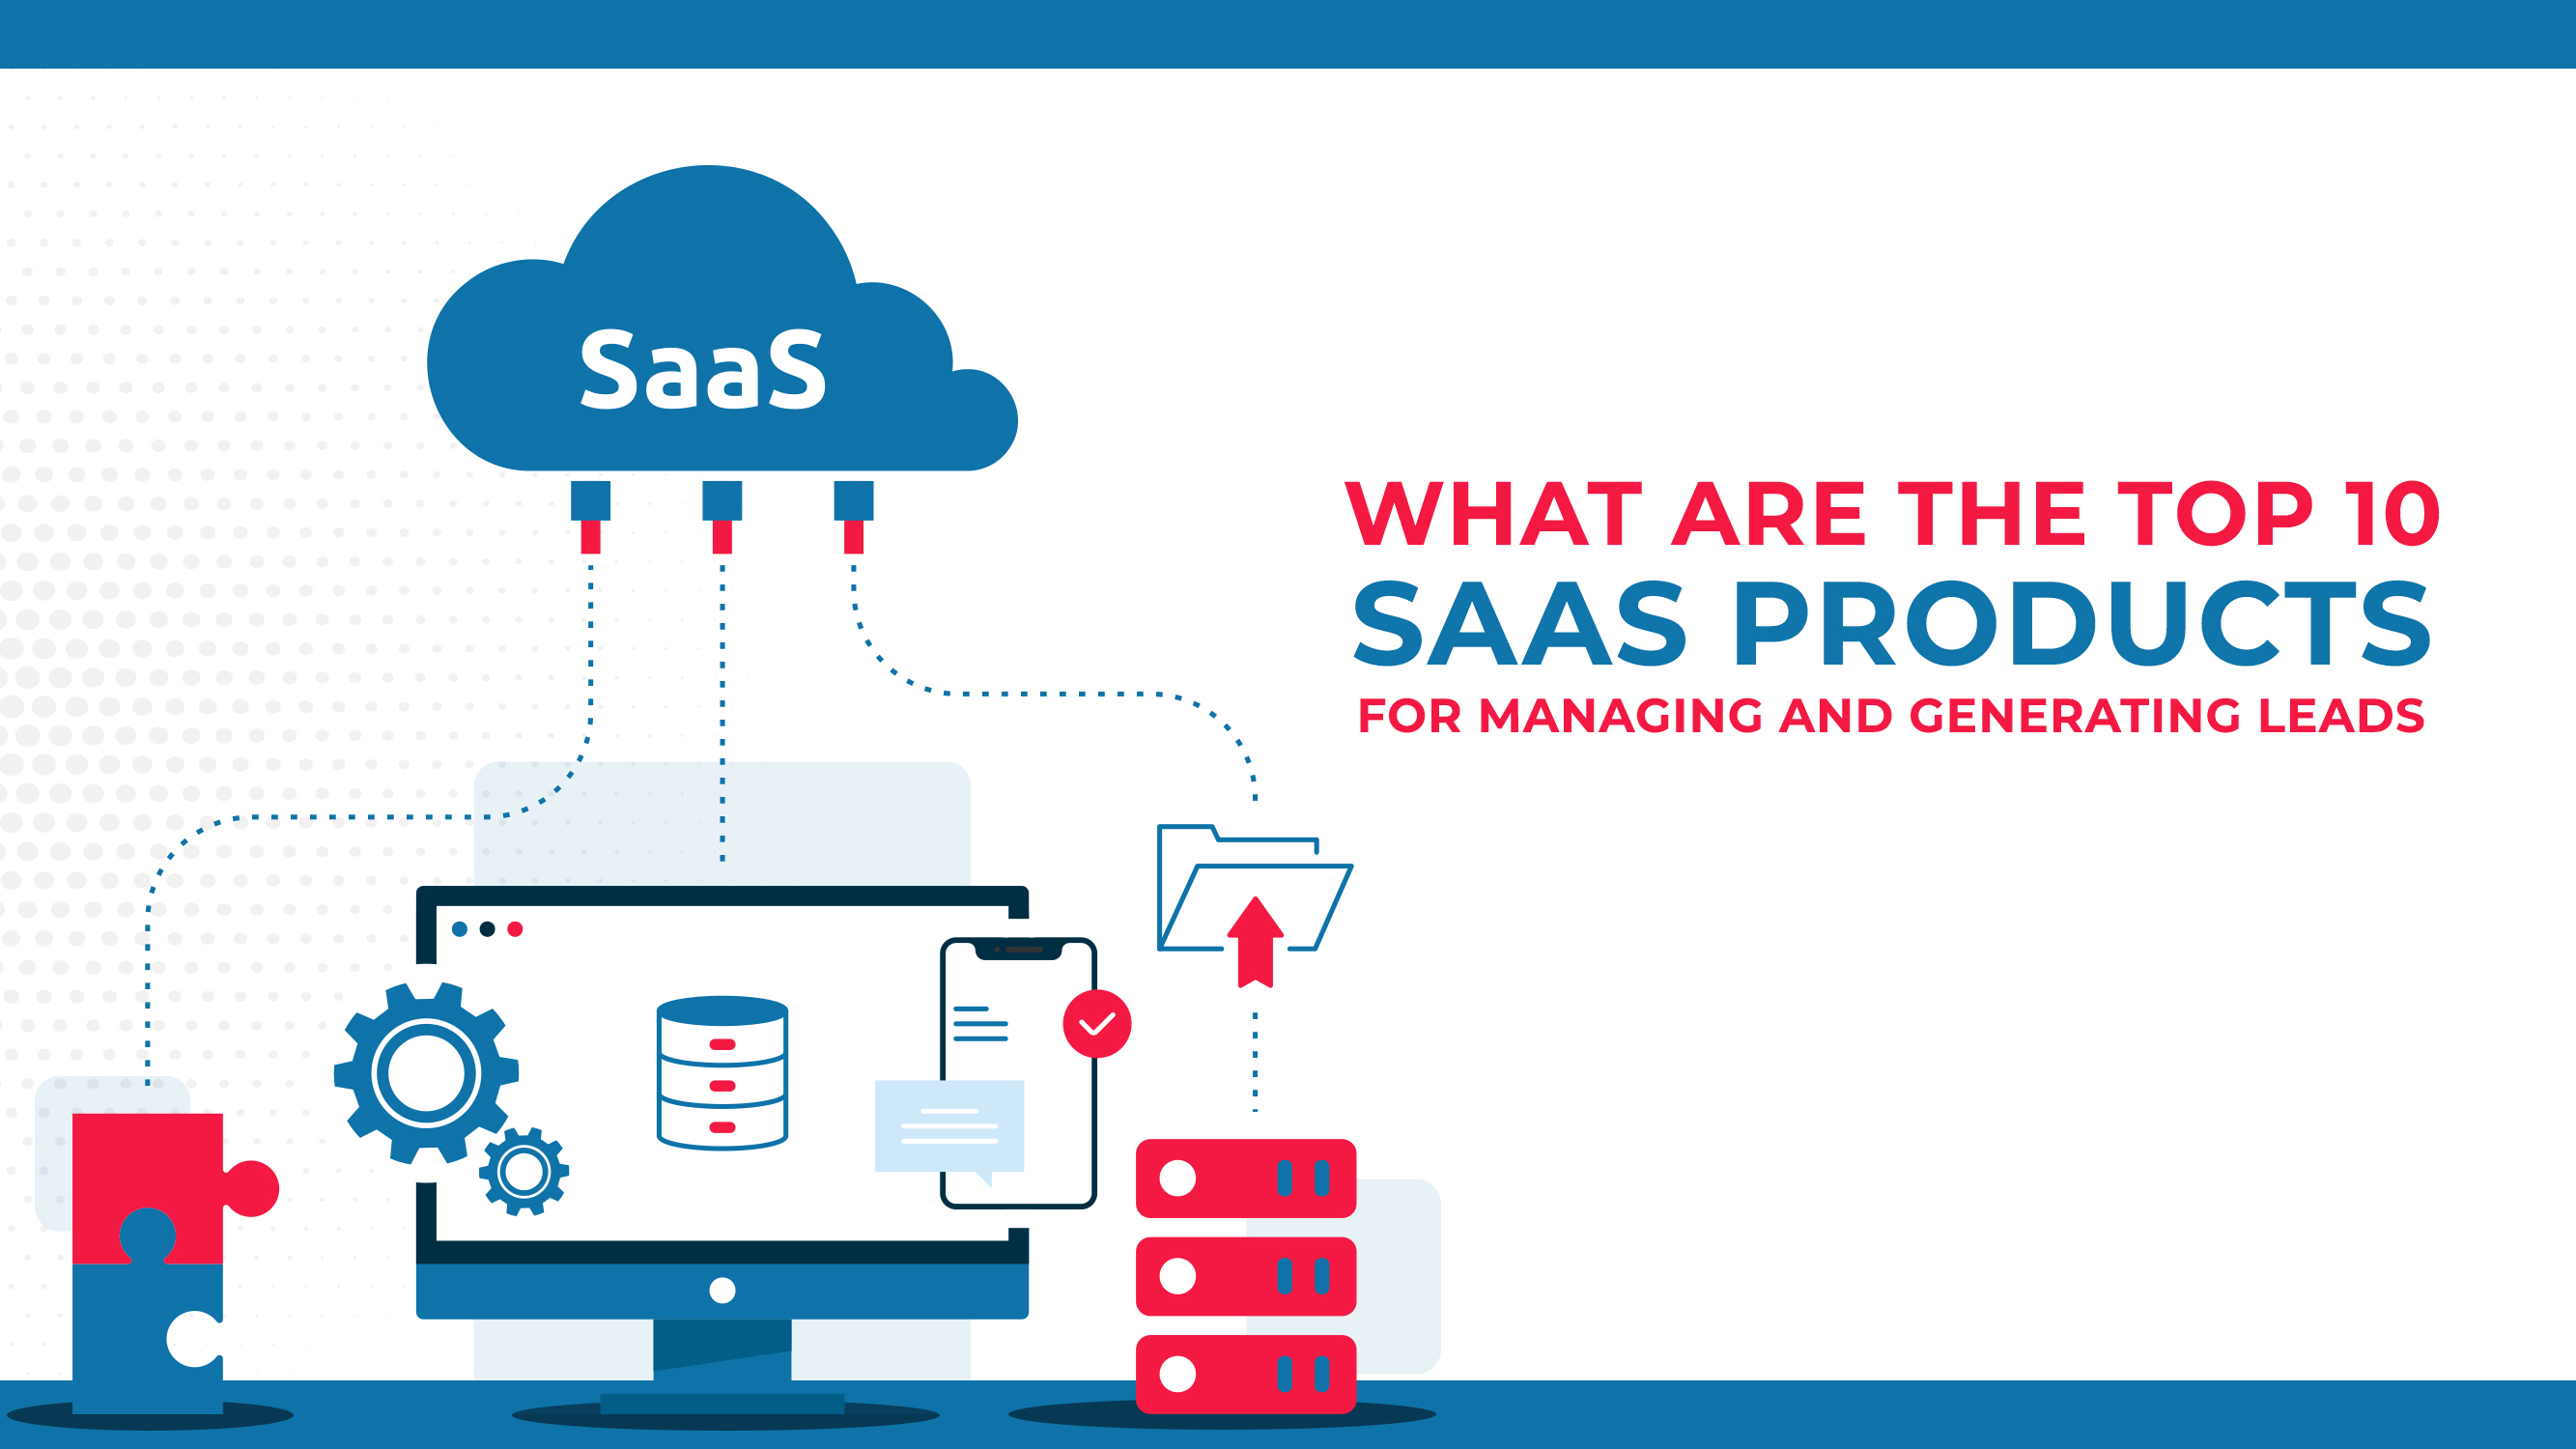 What Are The Top 10 SAAS Products For Managing And Generating Leads?